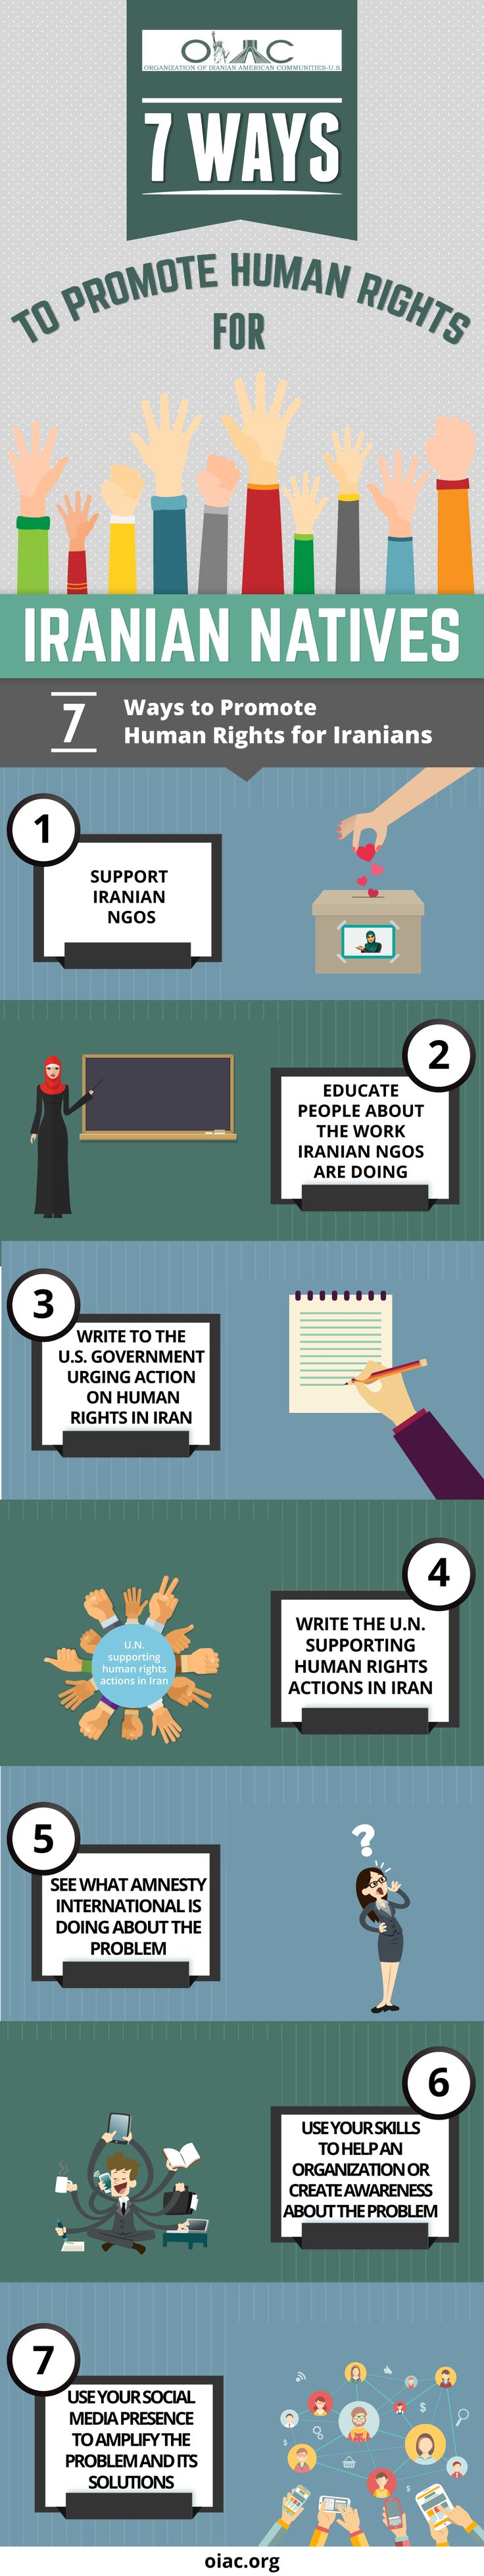 Supporting human rights in a far away country may seem difficult, but there is always something you can do. Check out these 7 tips for supporting human rights in Iran form the experts at the Organization of Iranian-American communities.